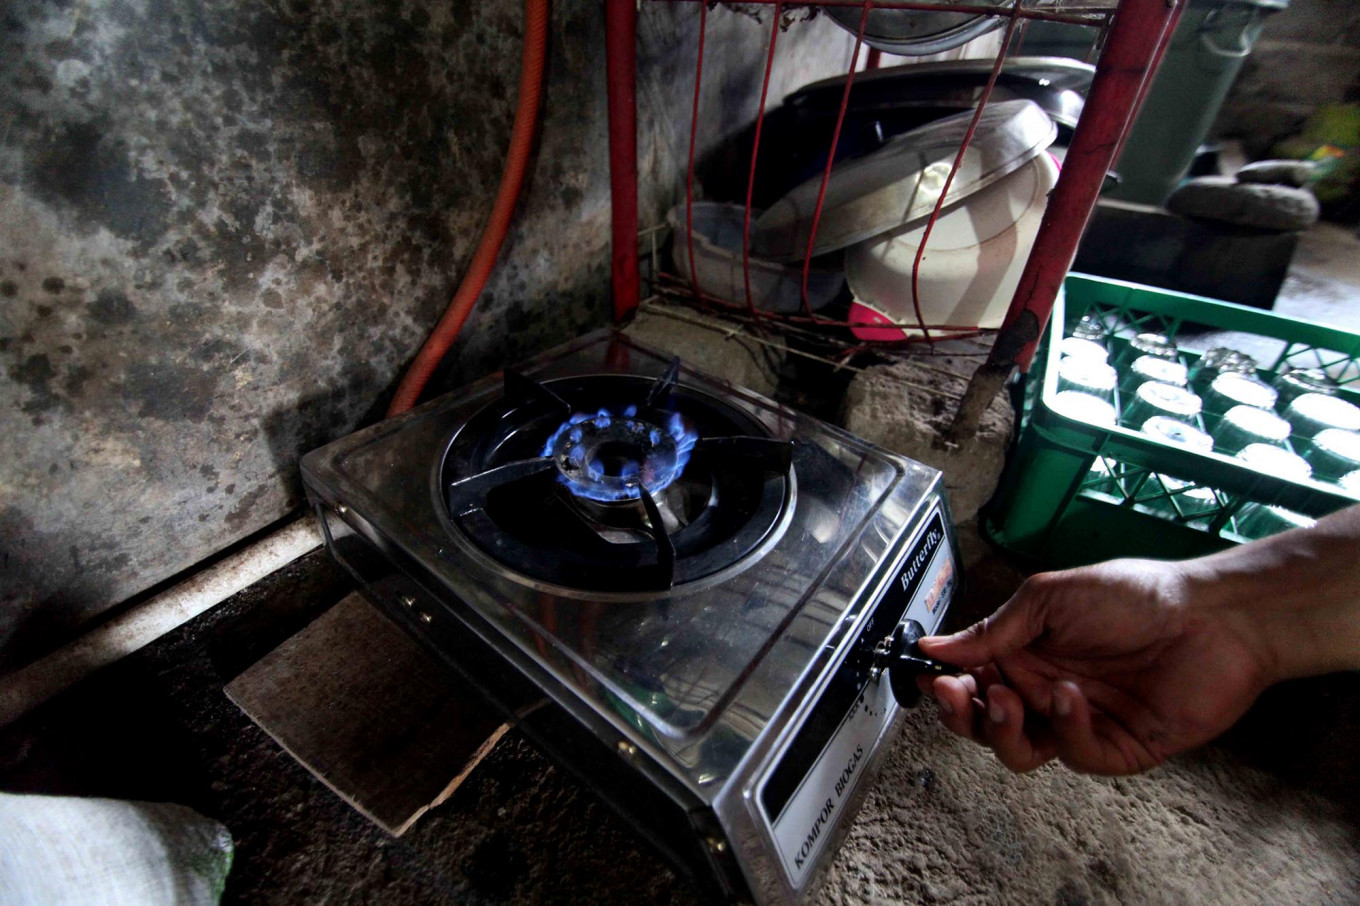 Biogas is also useful for cooking. JP/Maksum Nur Fauzan